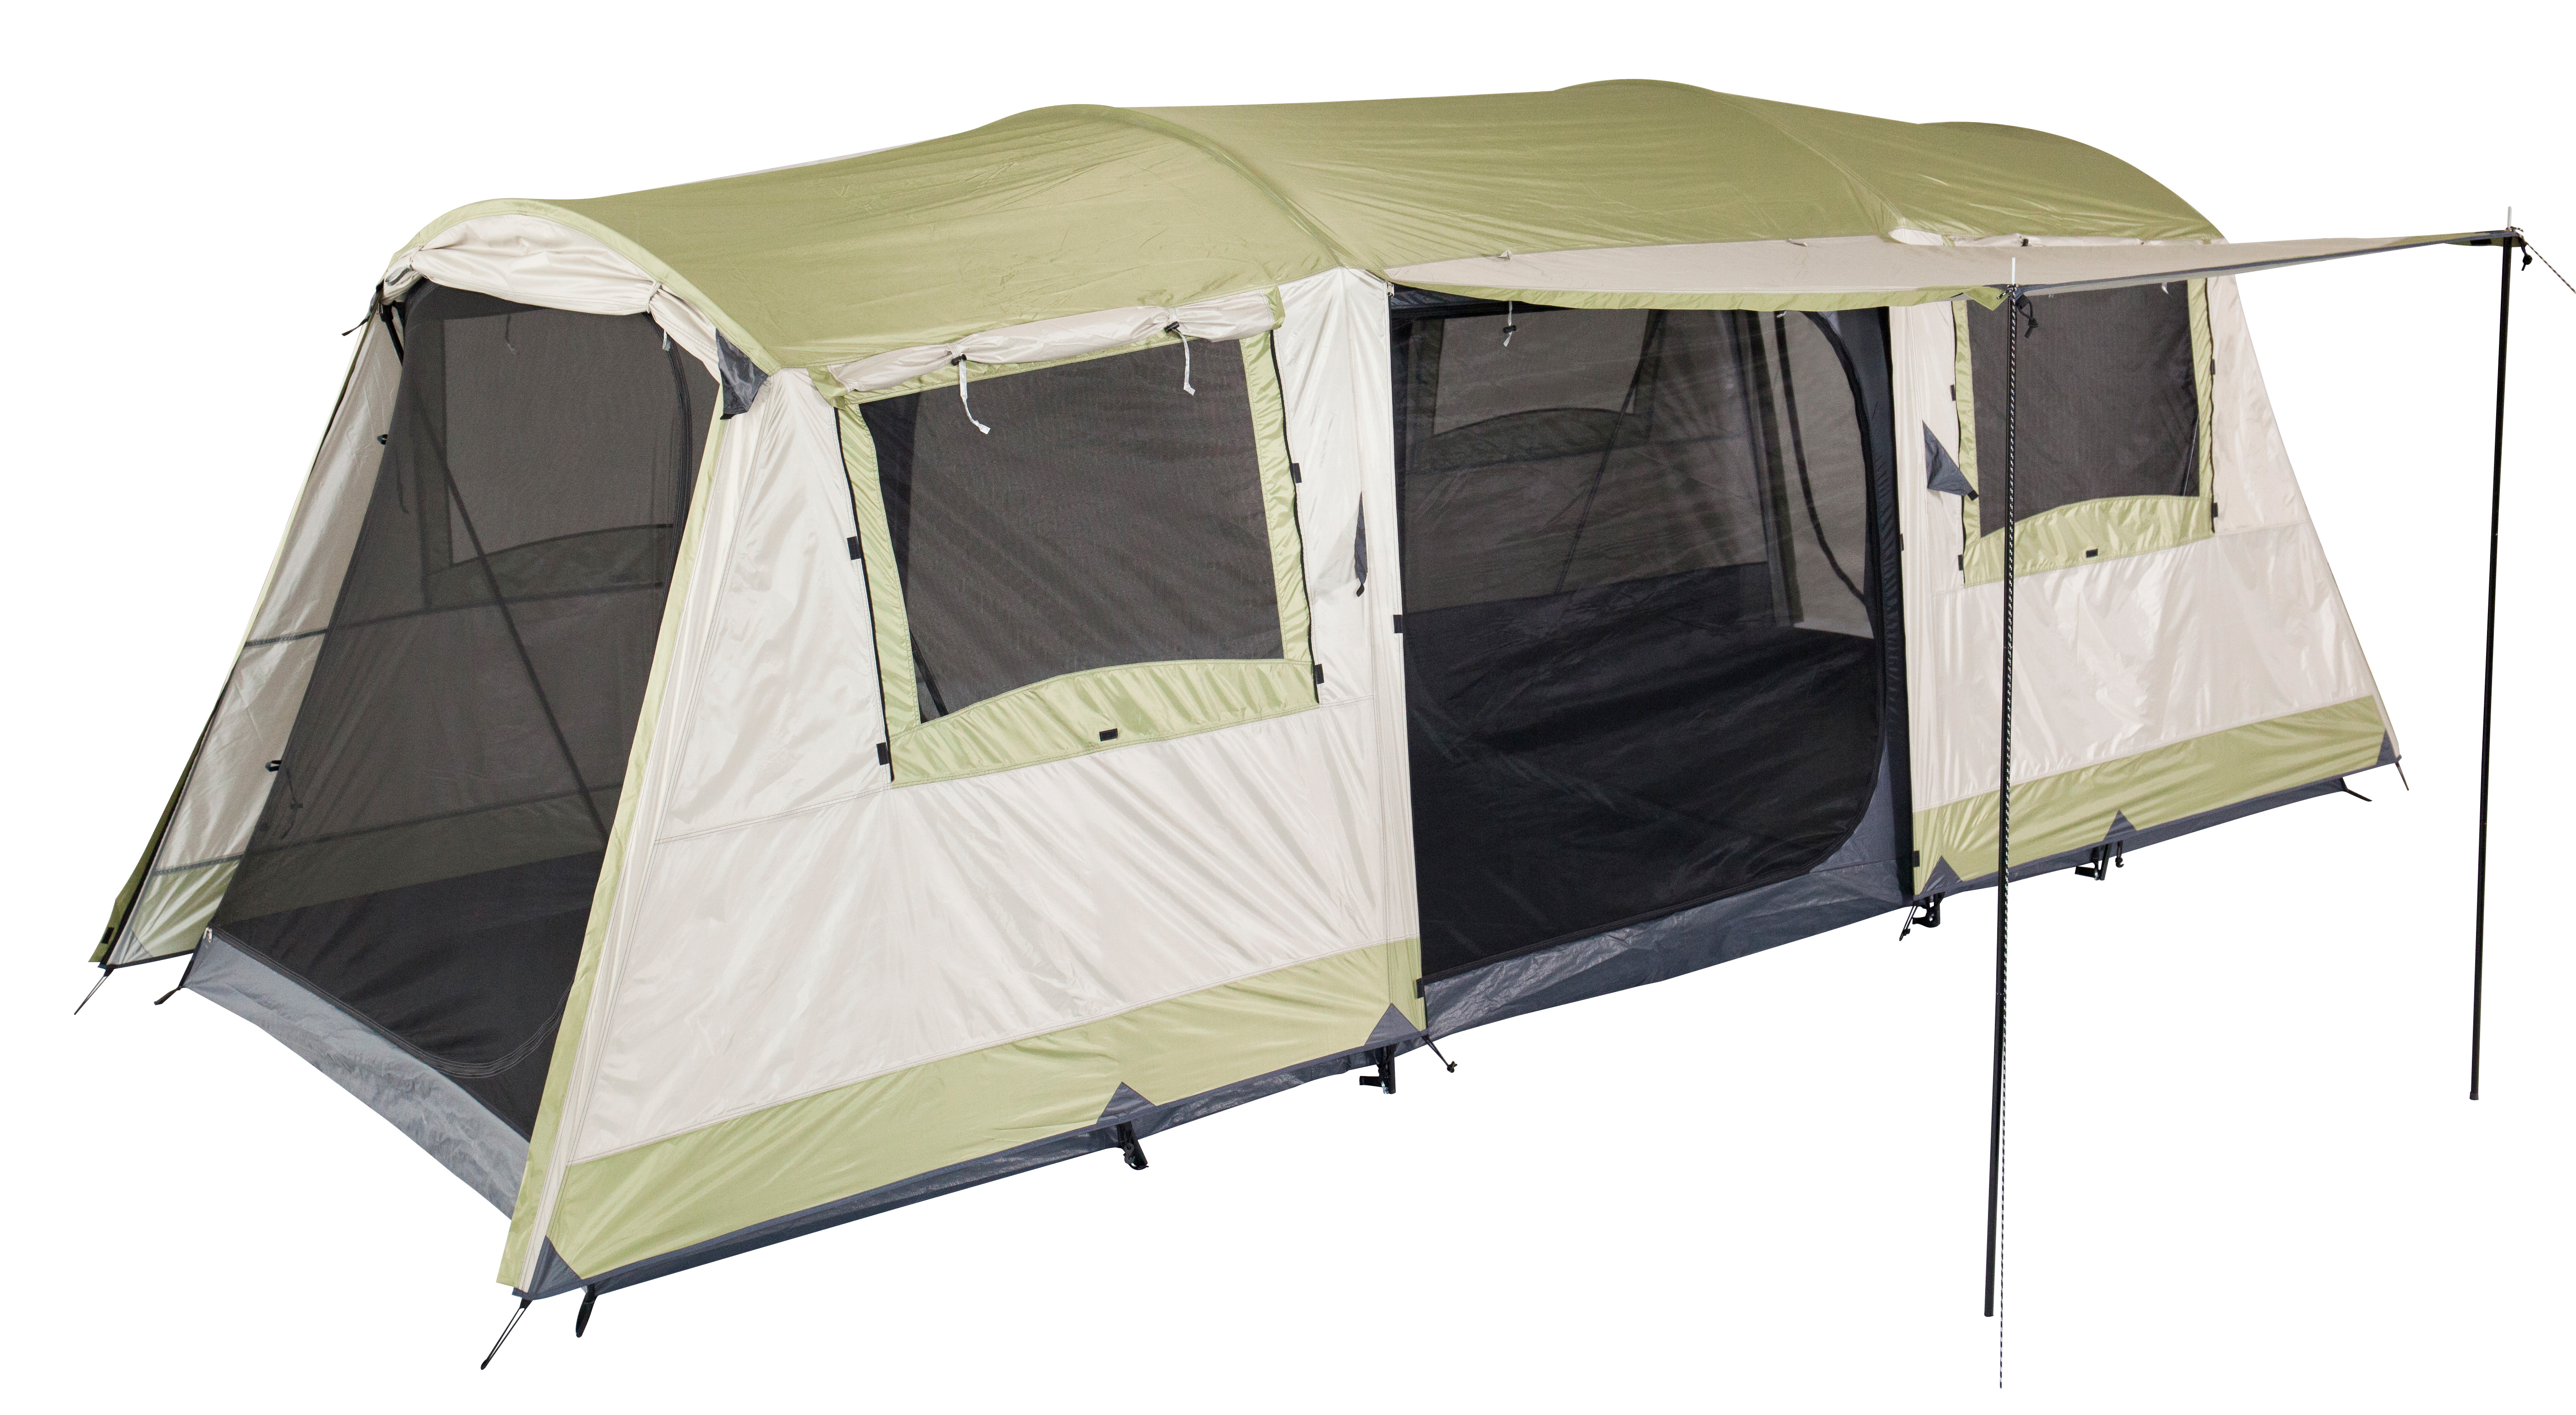 OZTRAIL BUNGALOW 9 DOME TENT FAMILY CAMPING (3 ROOM) 9P ...